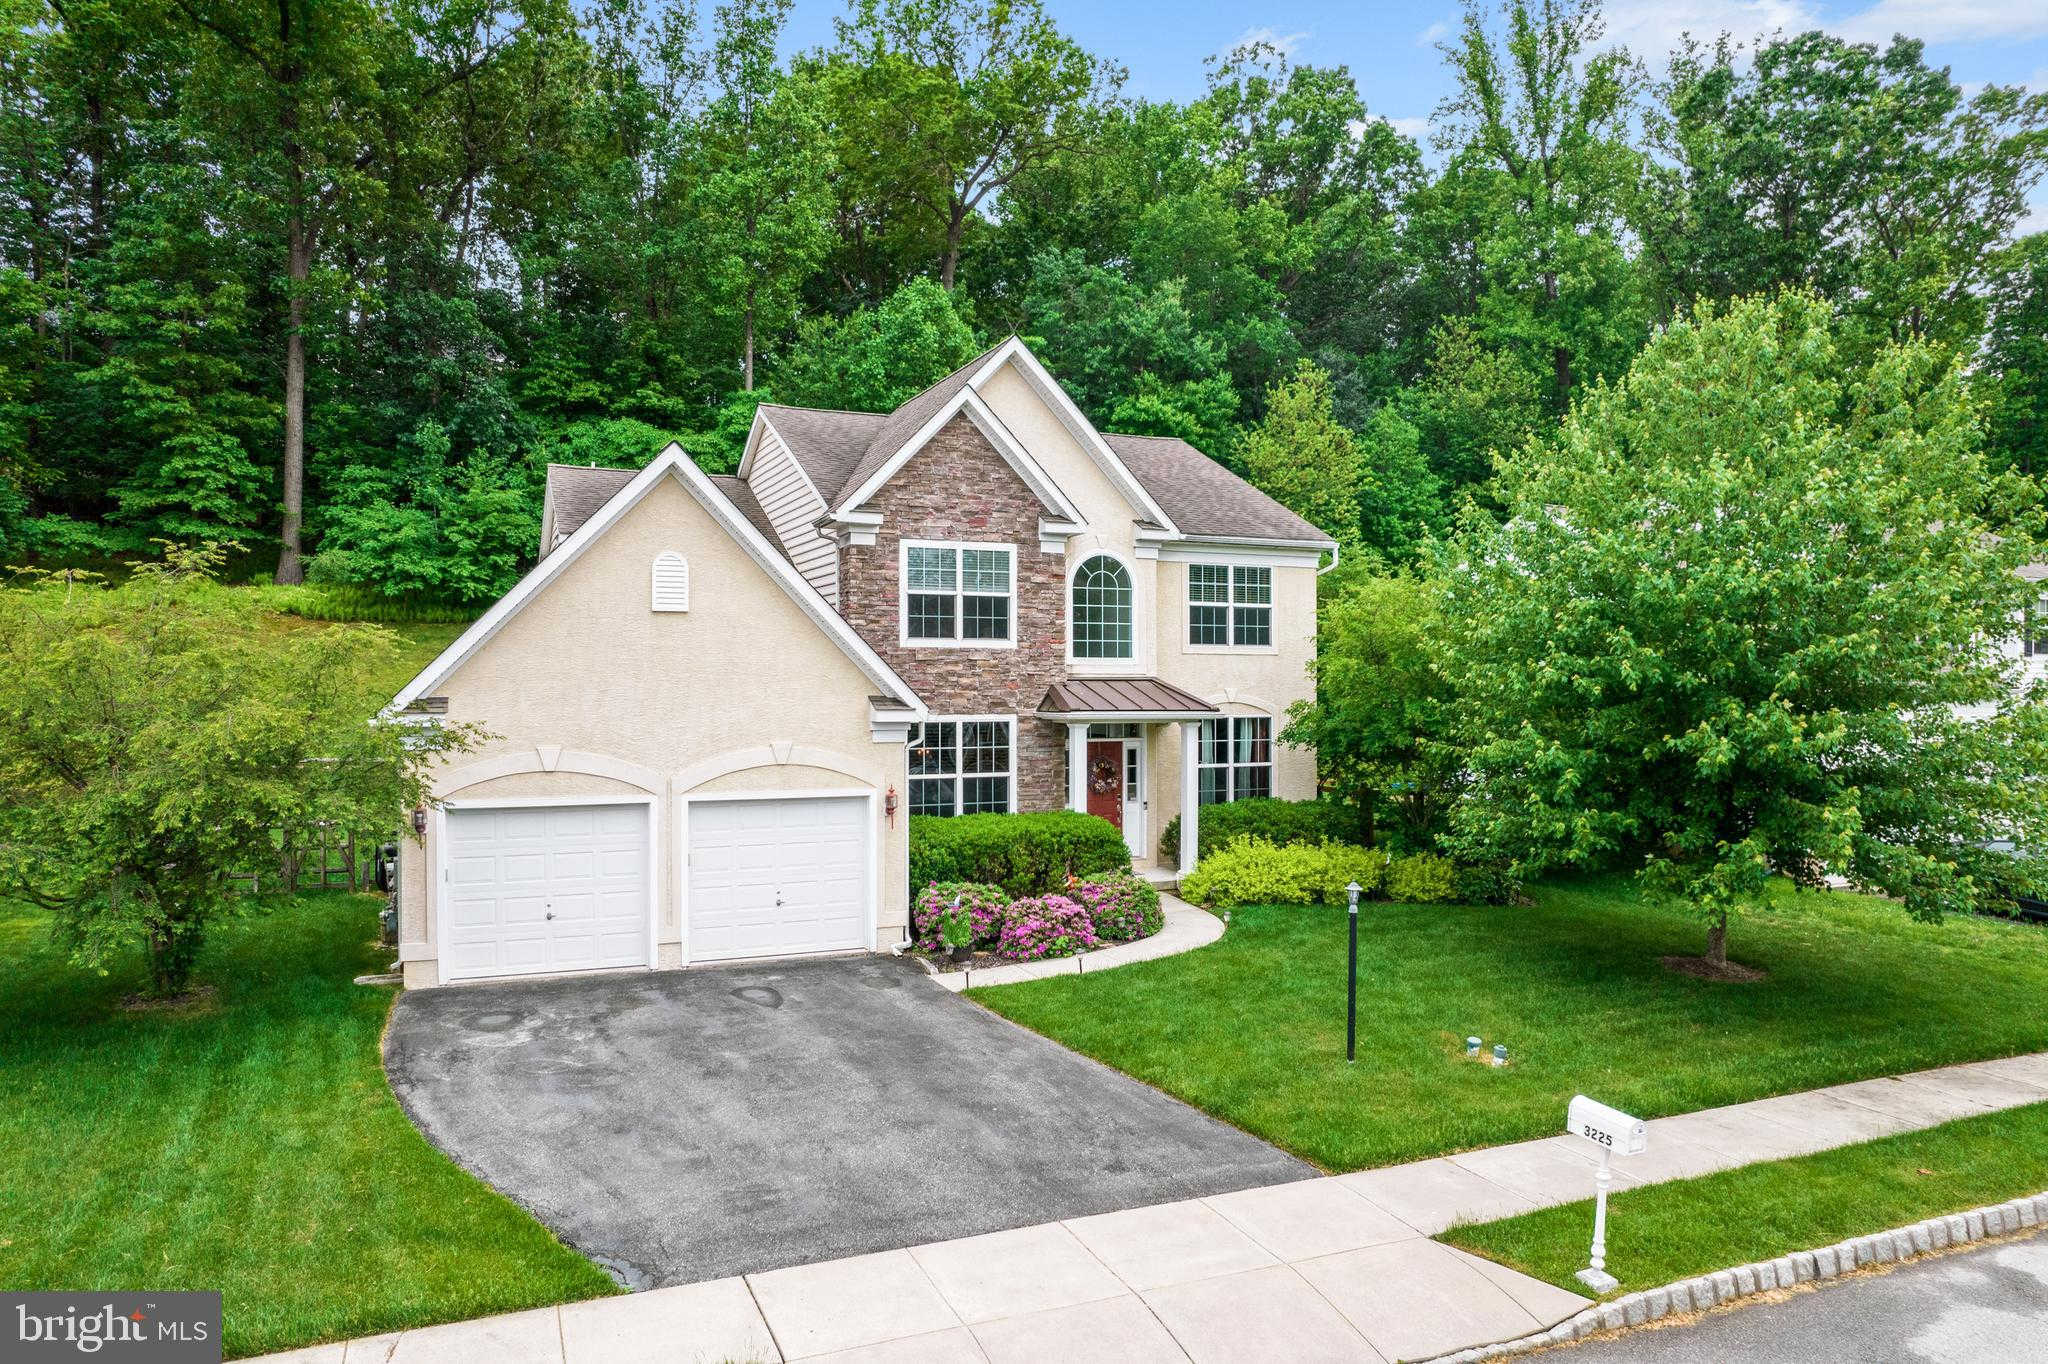 3225 Tyning Lane, Downingtown, PA 19335 is now new to the market!